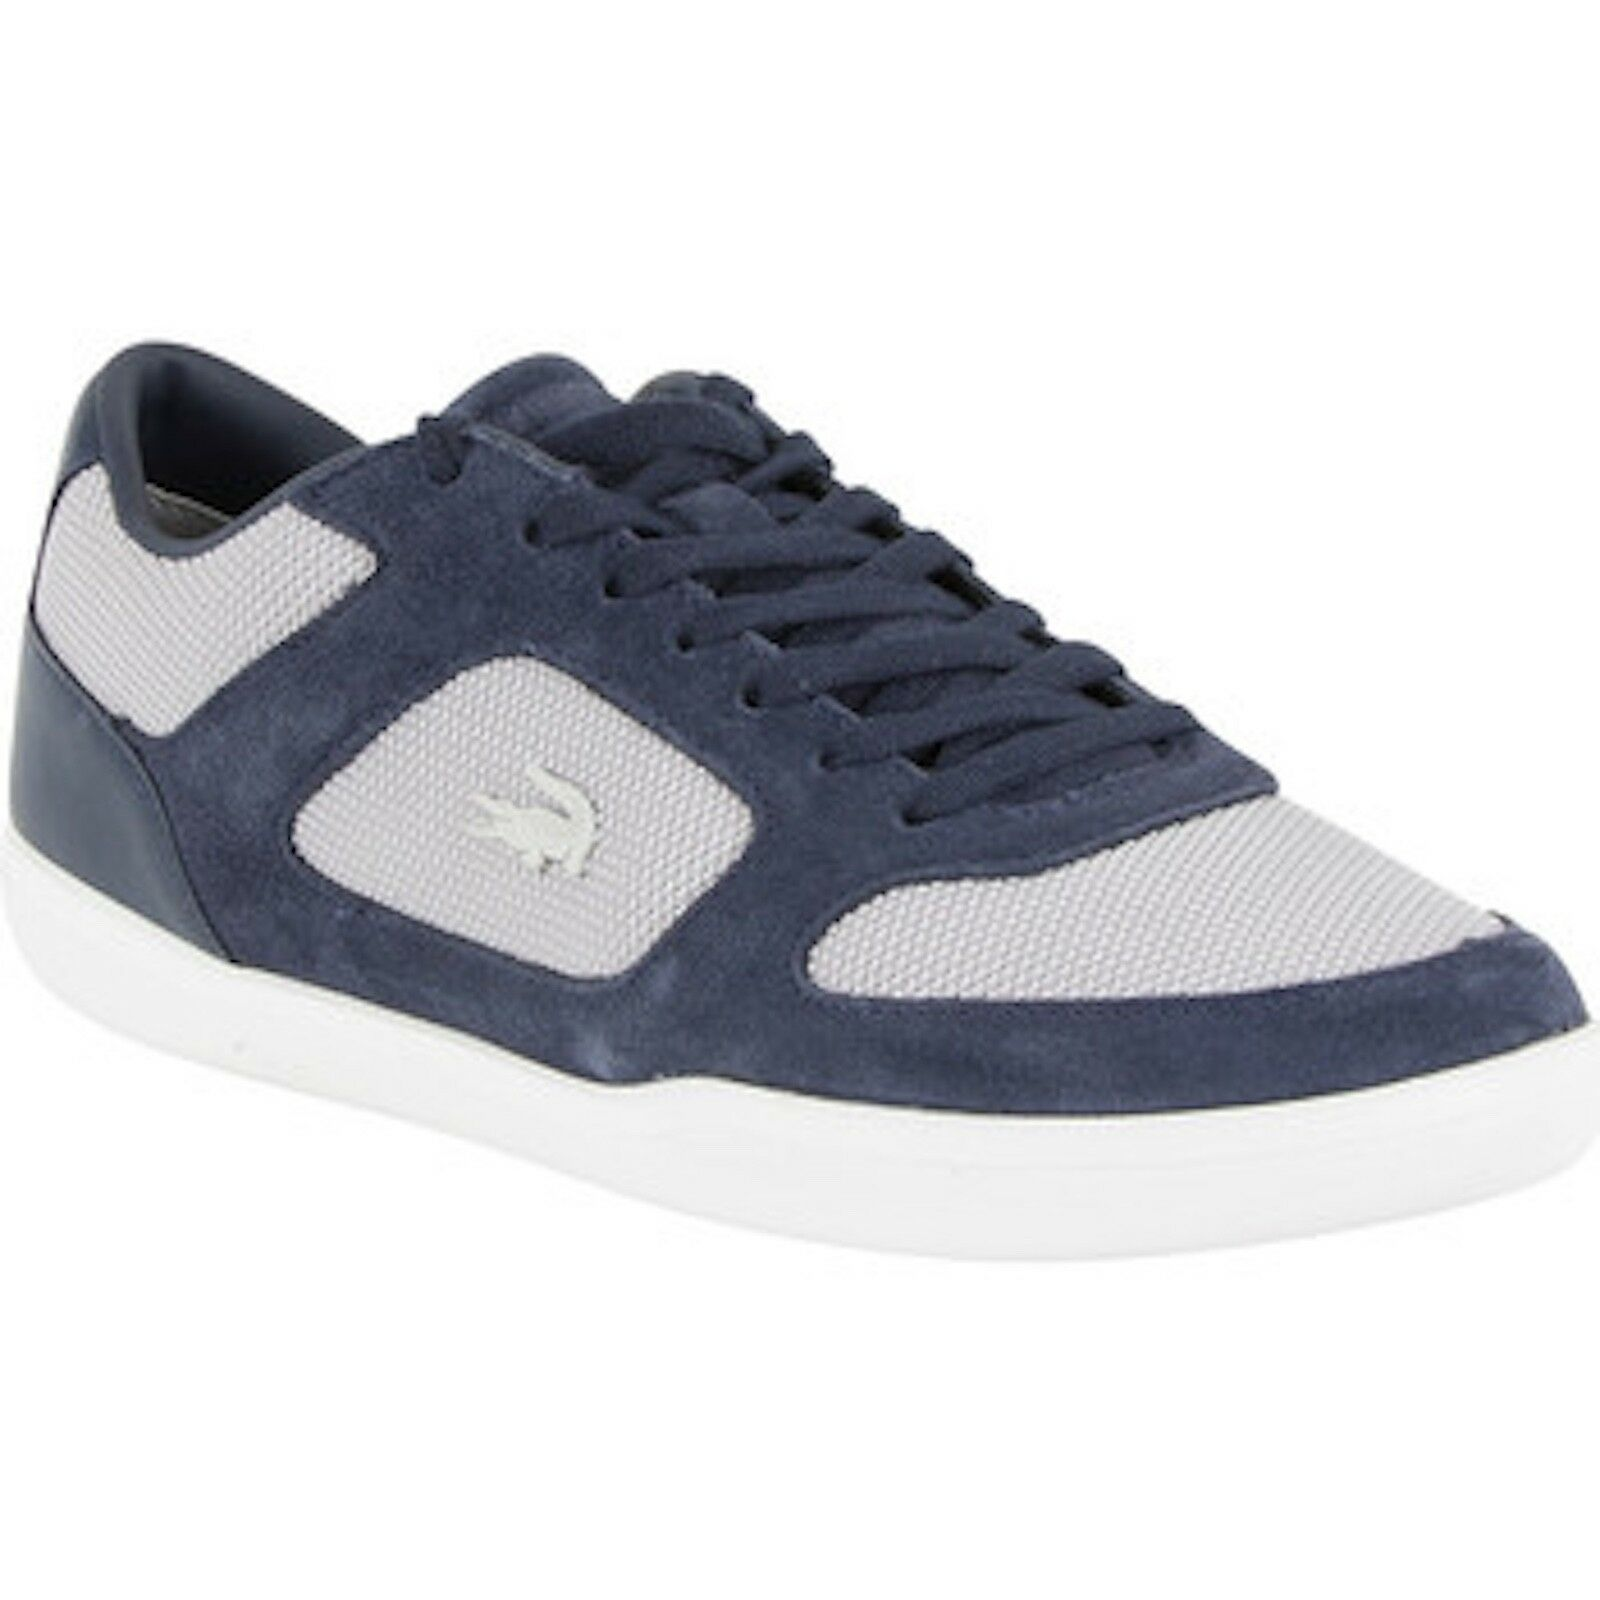 BNWB LACOSTE HOMME COURT-Minimal 3161 Cuir/Daim Baskets Taille UK 8 RRP £ 100